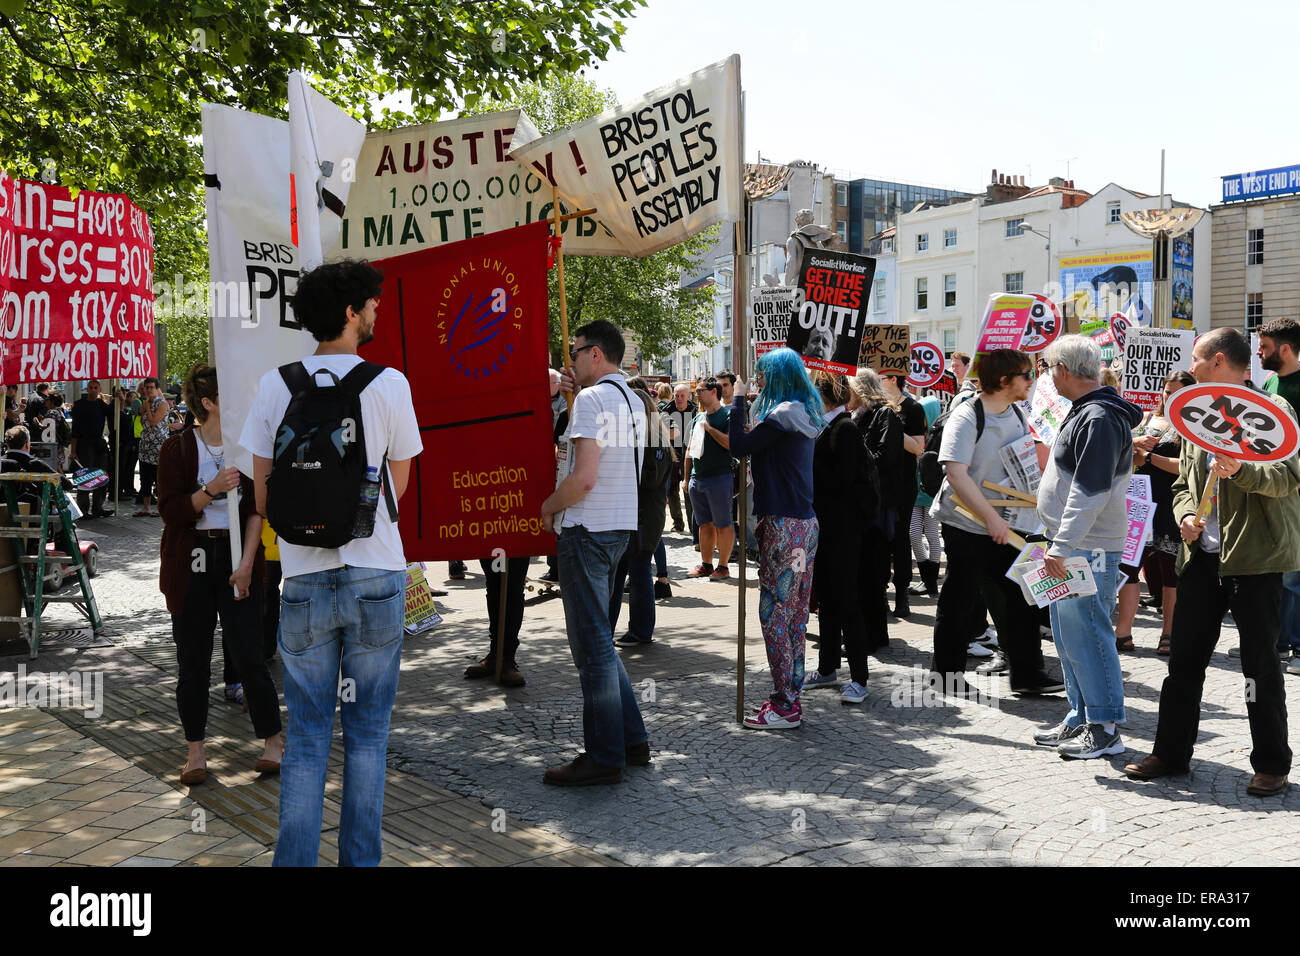 Bristol, UK. 30th May, 2015. Anti-Austerity protest in Bristol.  Several hundred people join a protest in Bristol - Stock Image